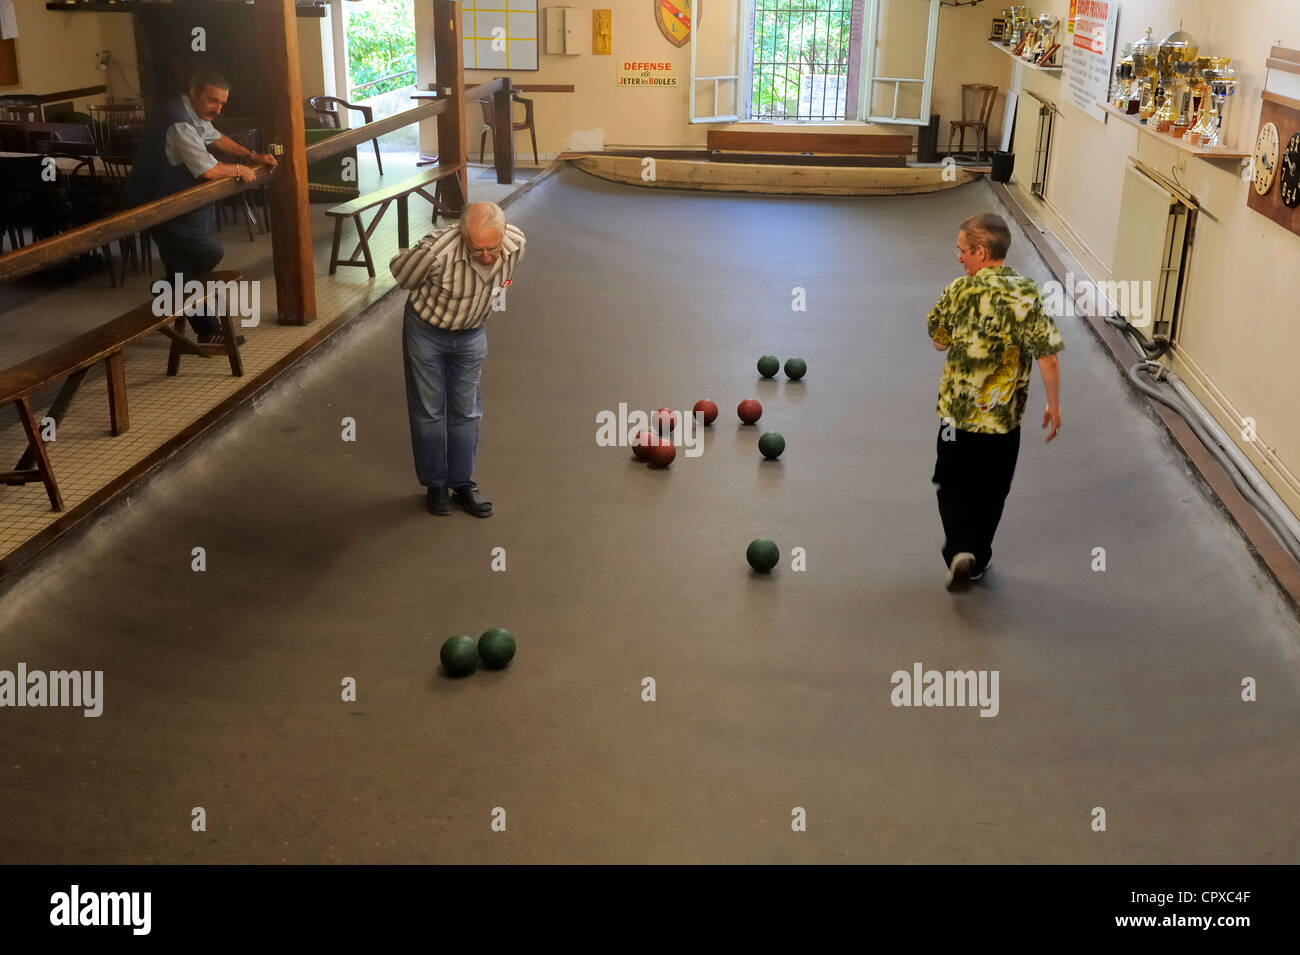 France, Loire Atlantique, Nantes, Le Lorrain Cafe, typical and local bowls game - Stock Image